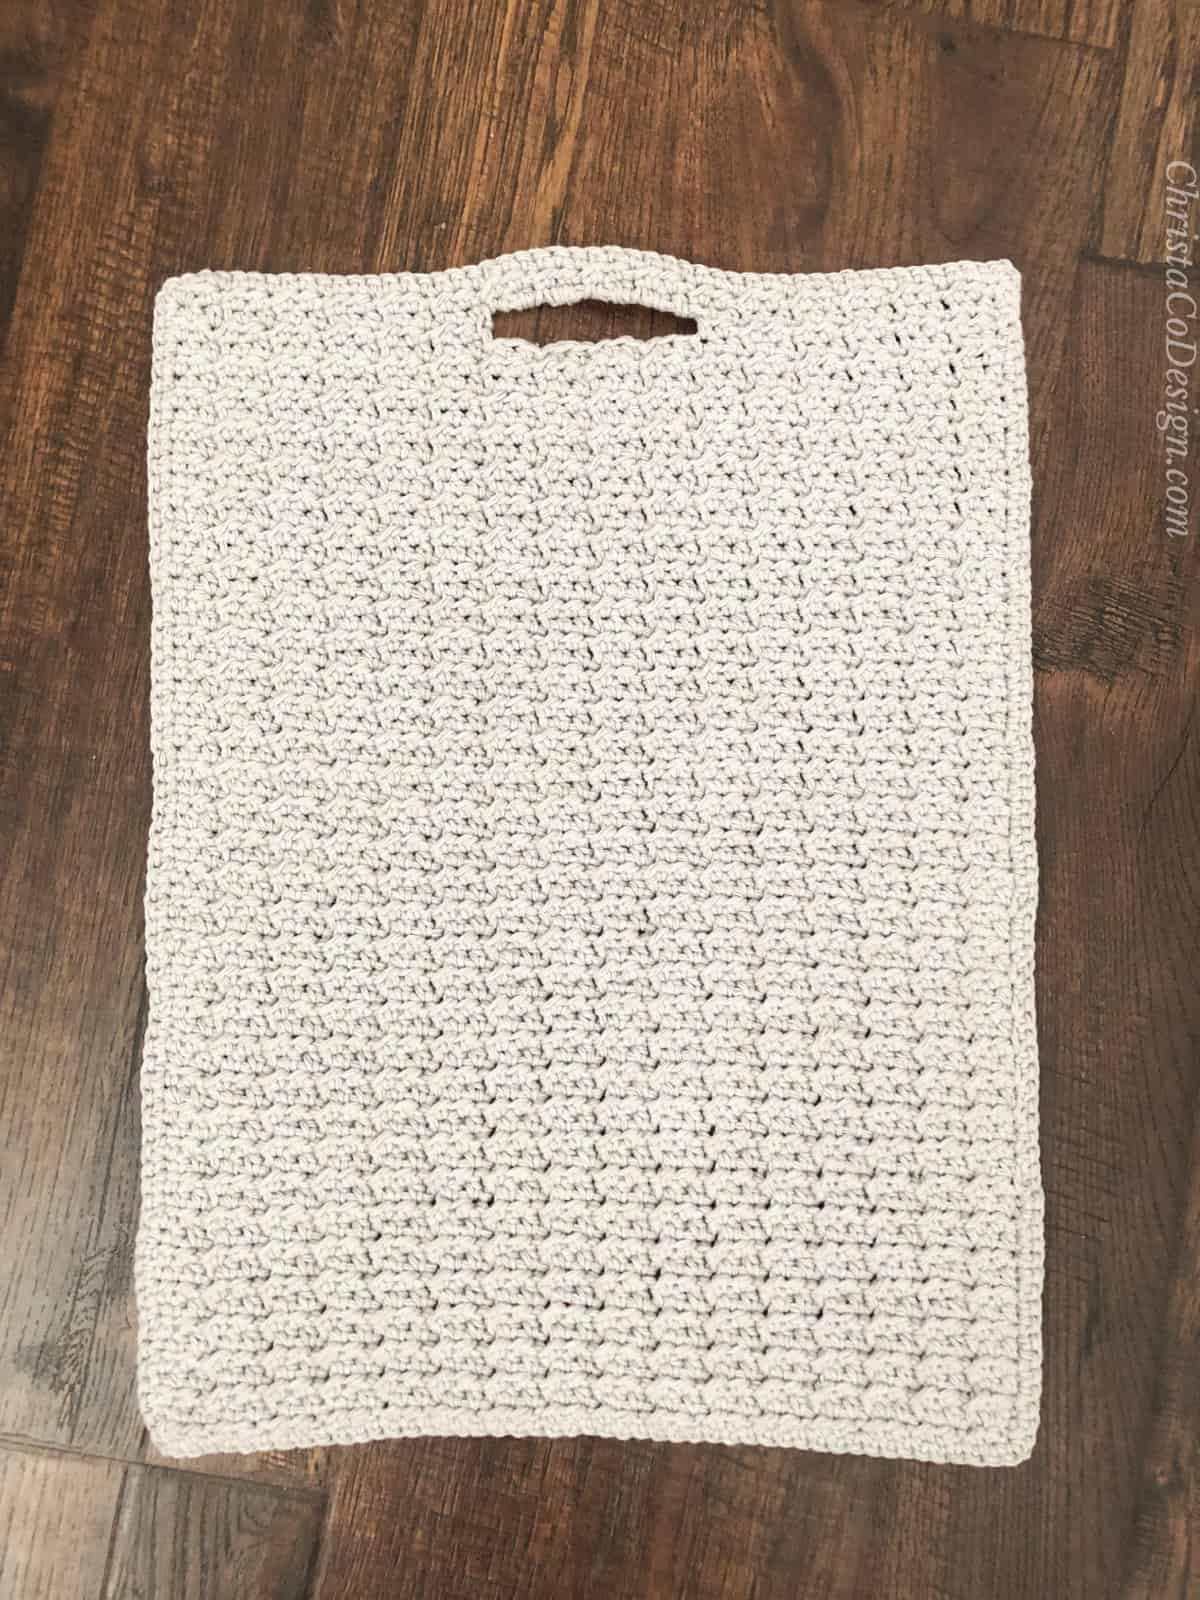 Crochet kitchen towel pattern with built in loop for hanging.